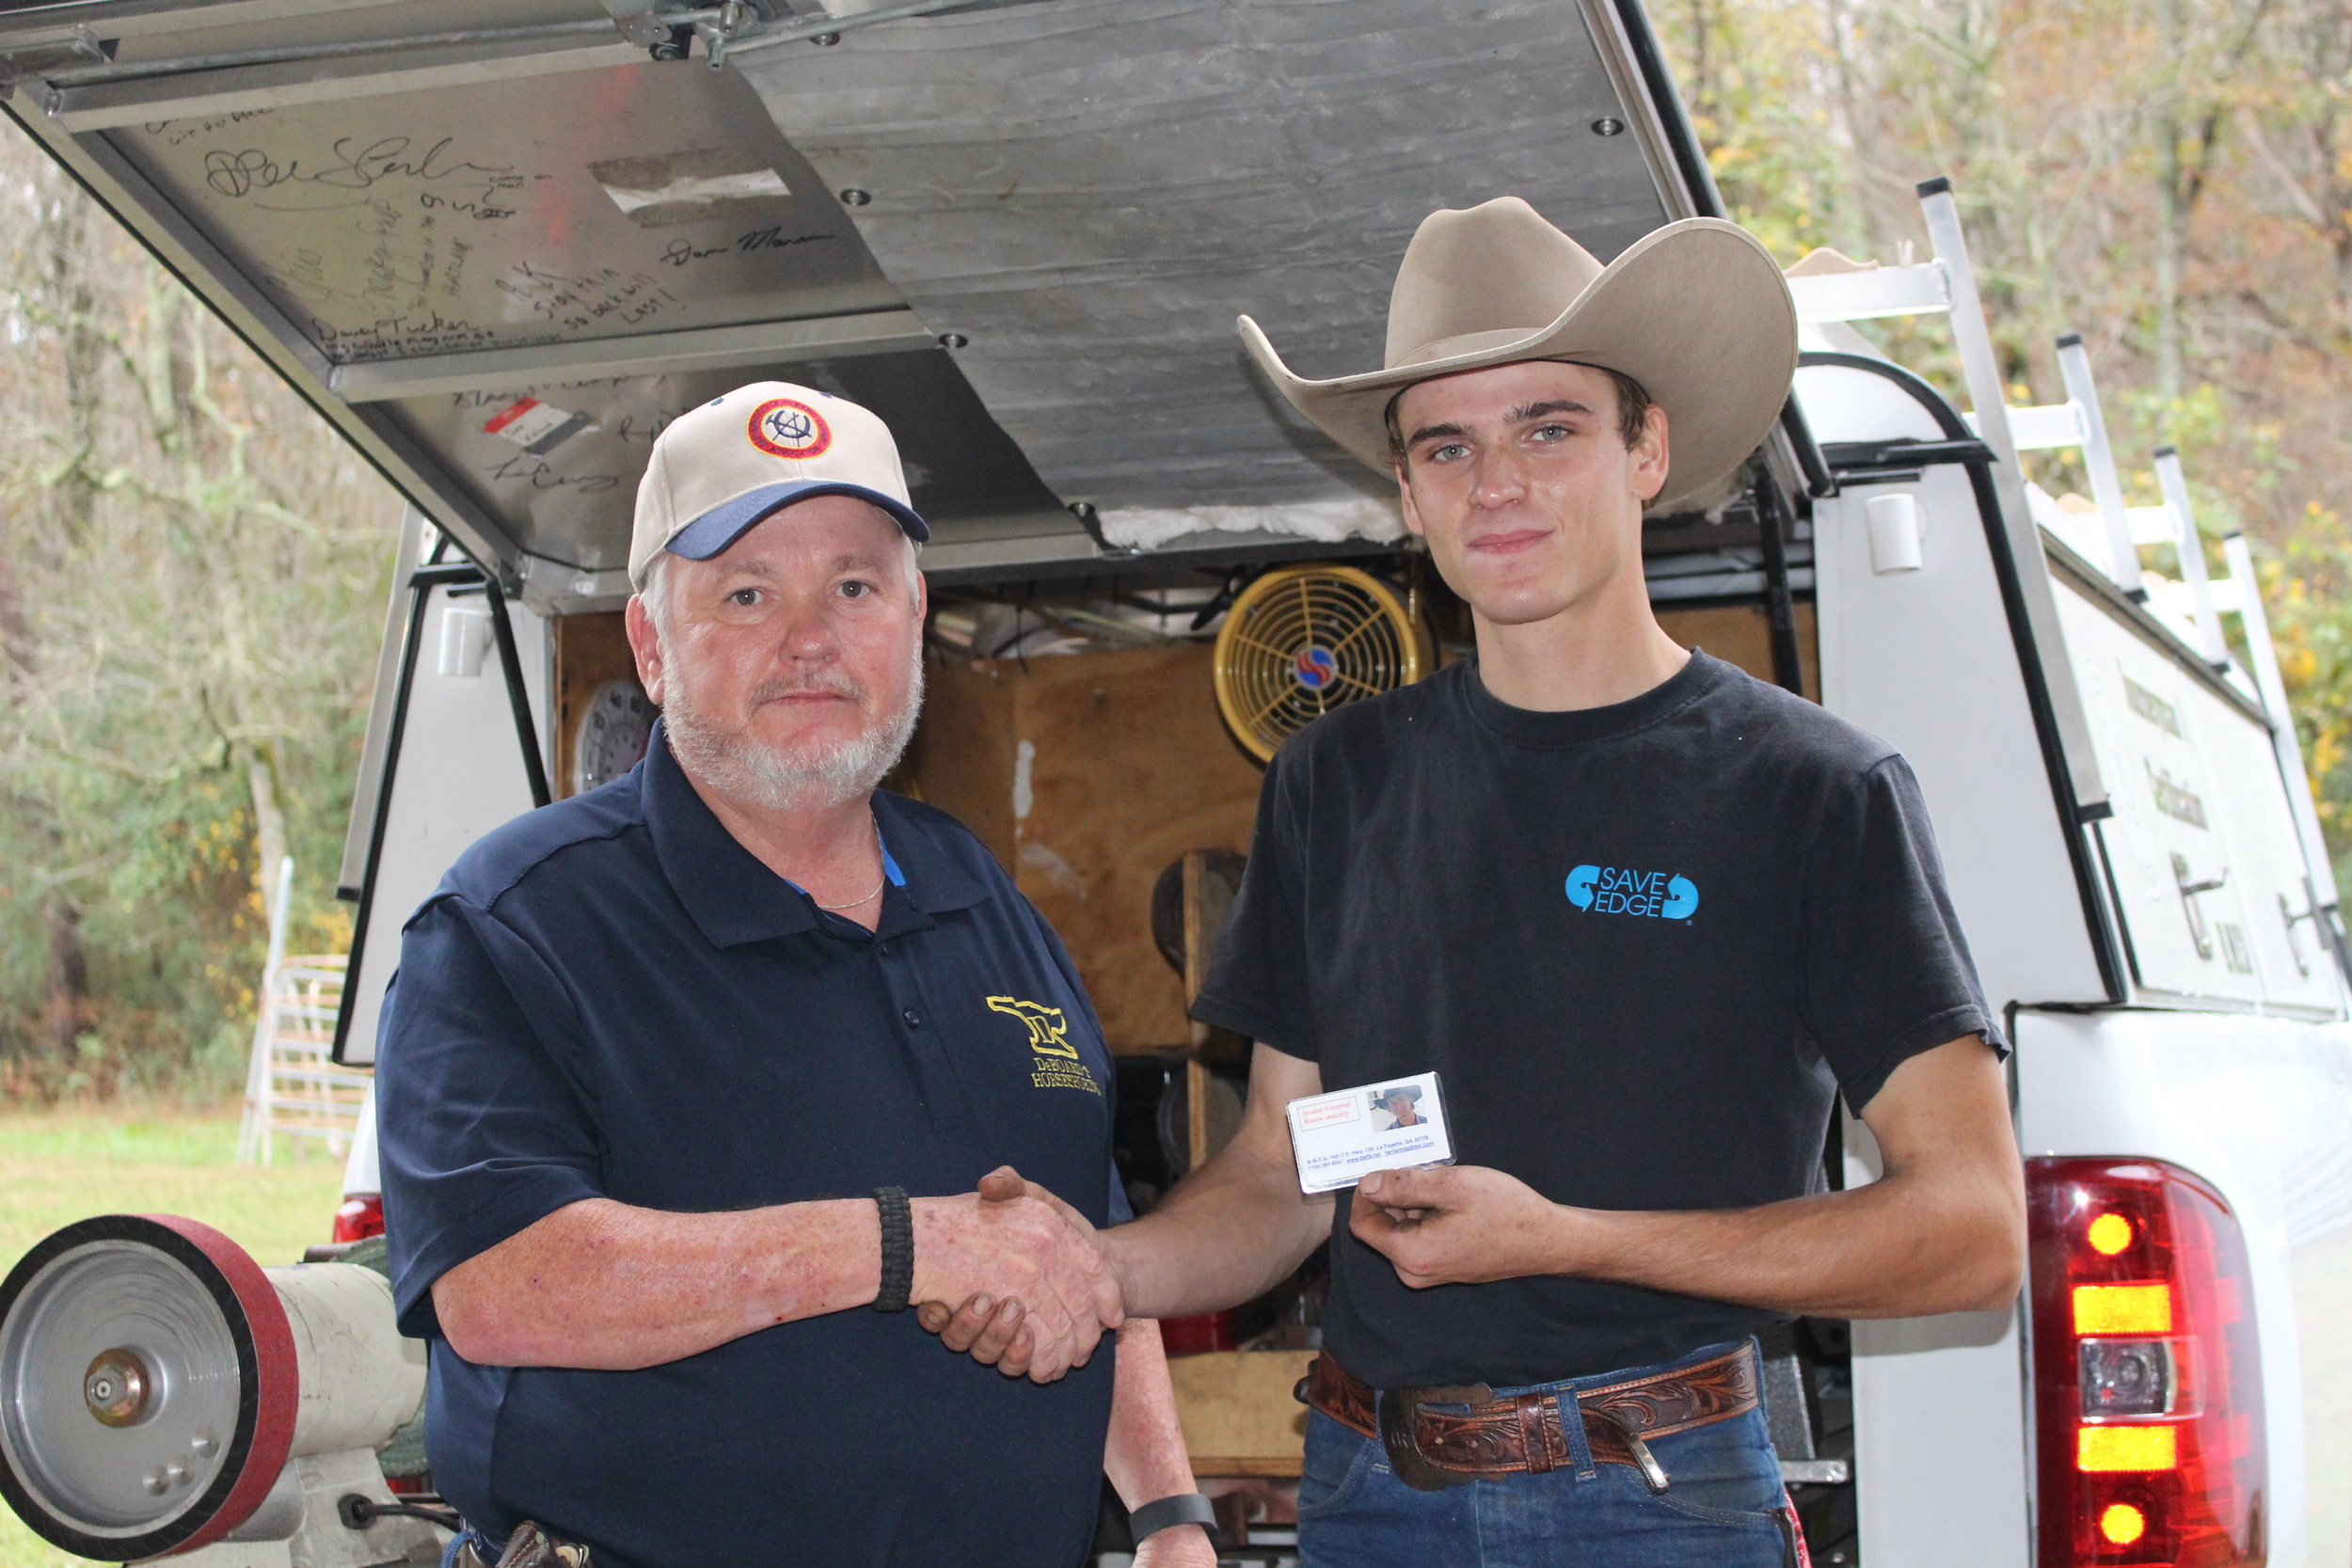 Ronney DeBoard of Georgia (left) with Daniel Riffe of Texas (right)